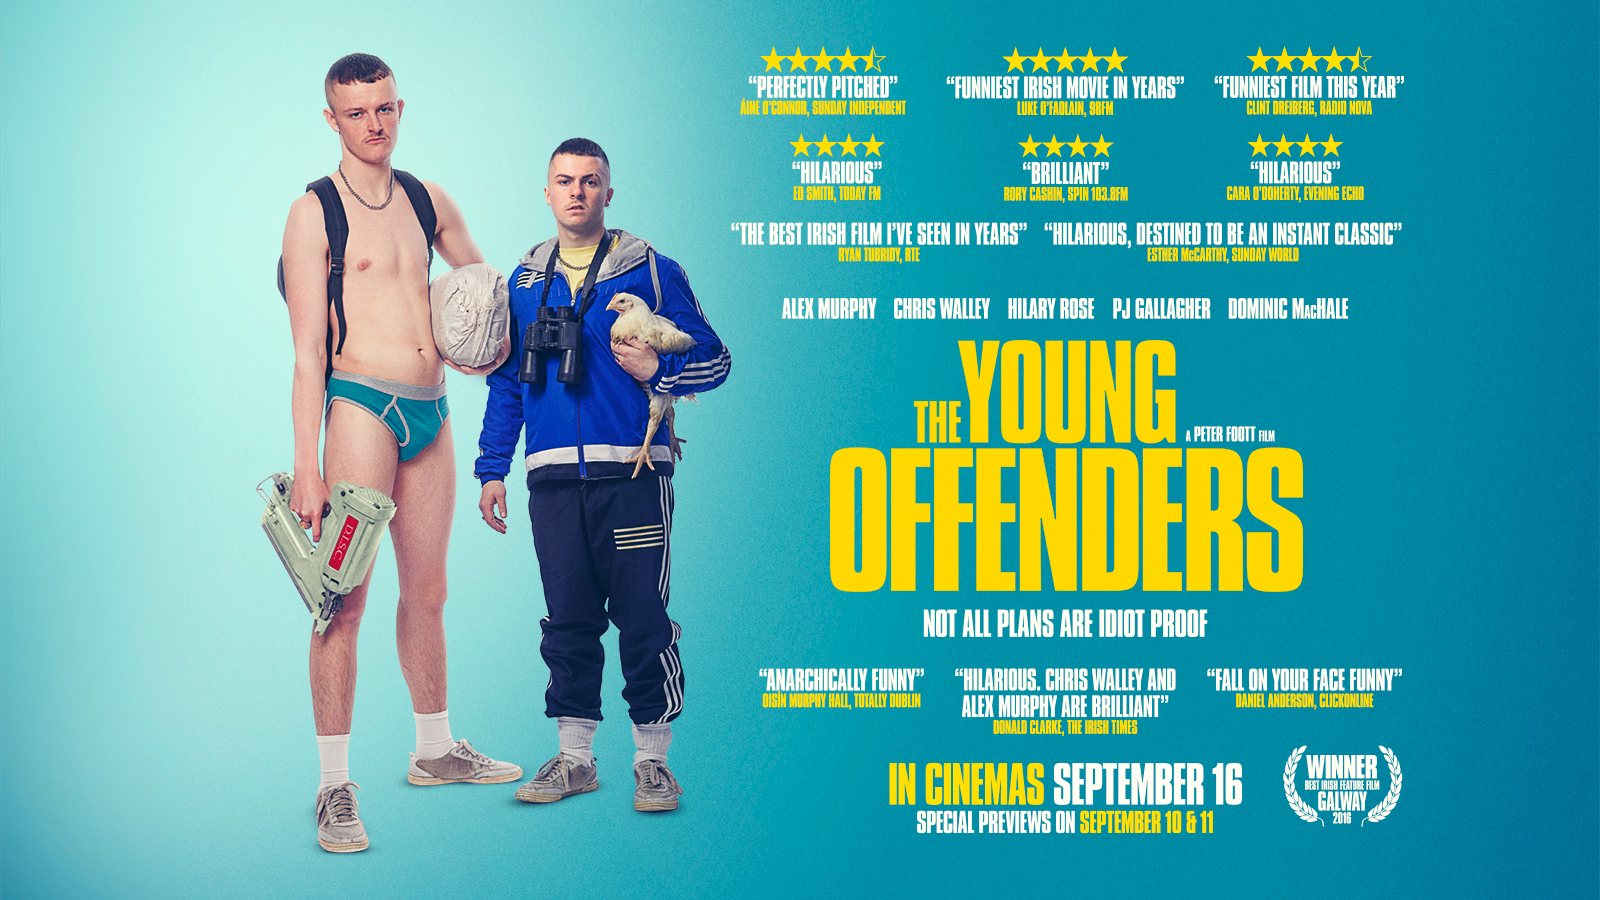 The Young Offender movie poster design